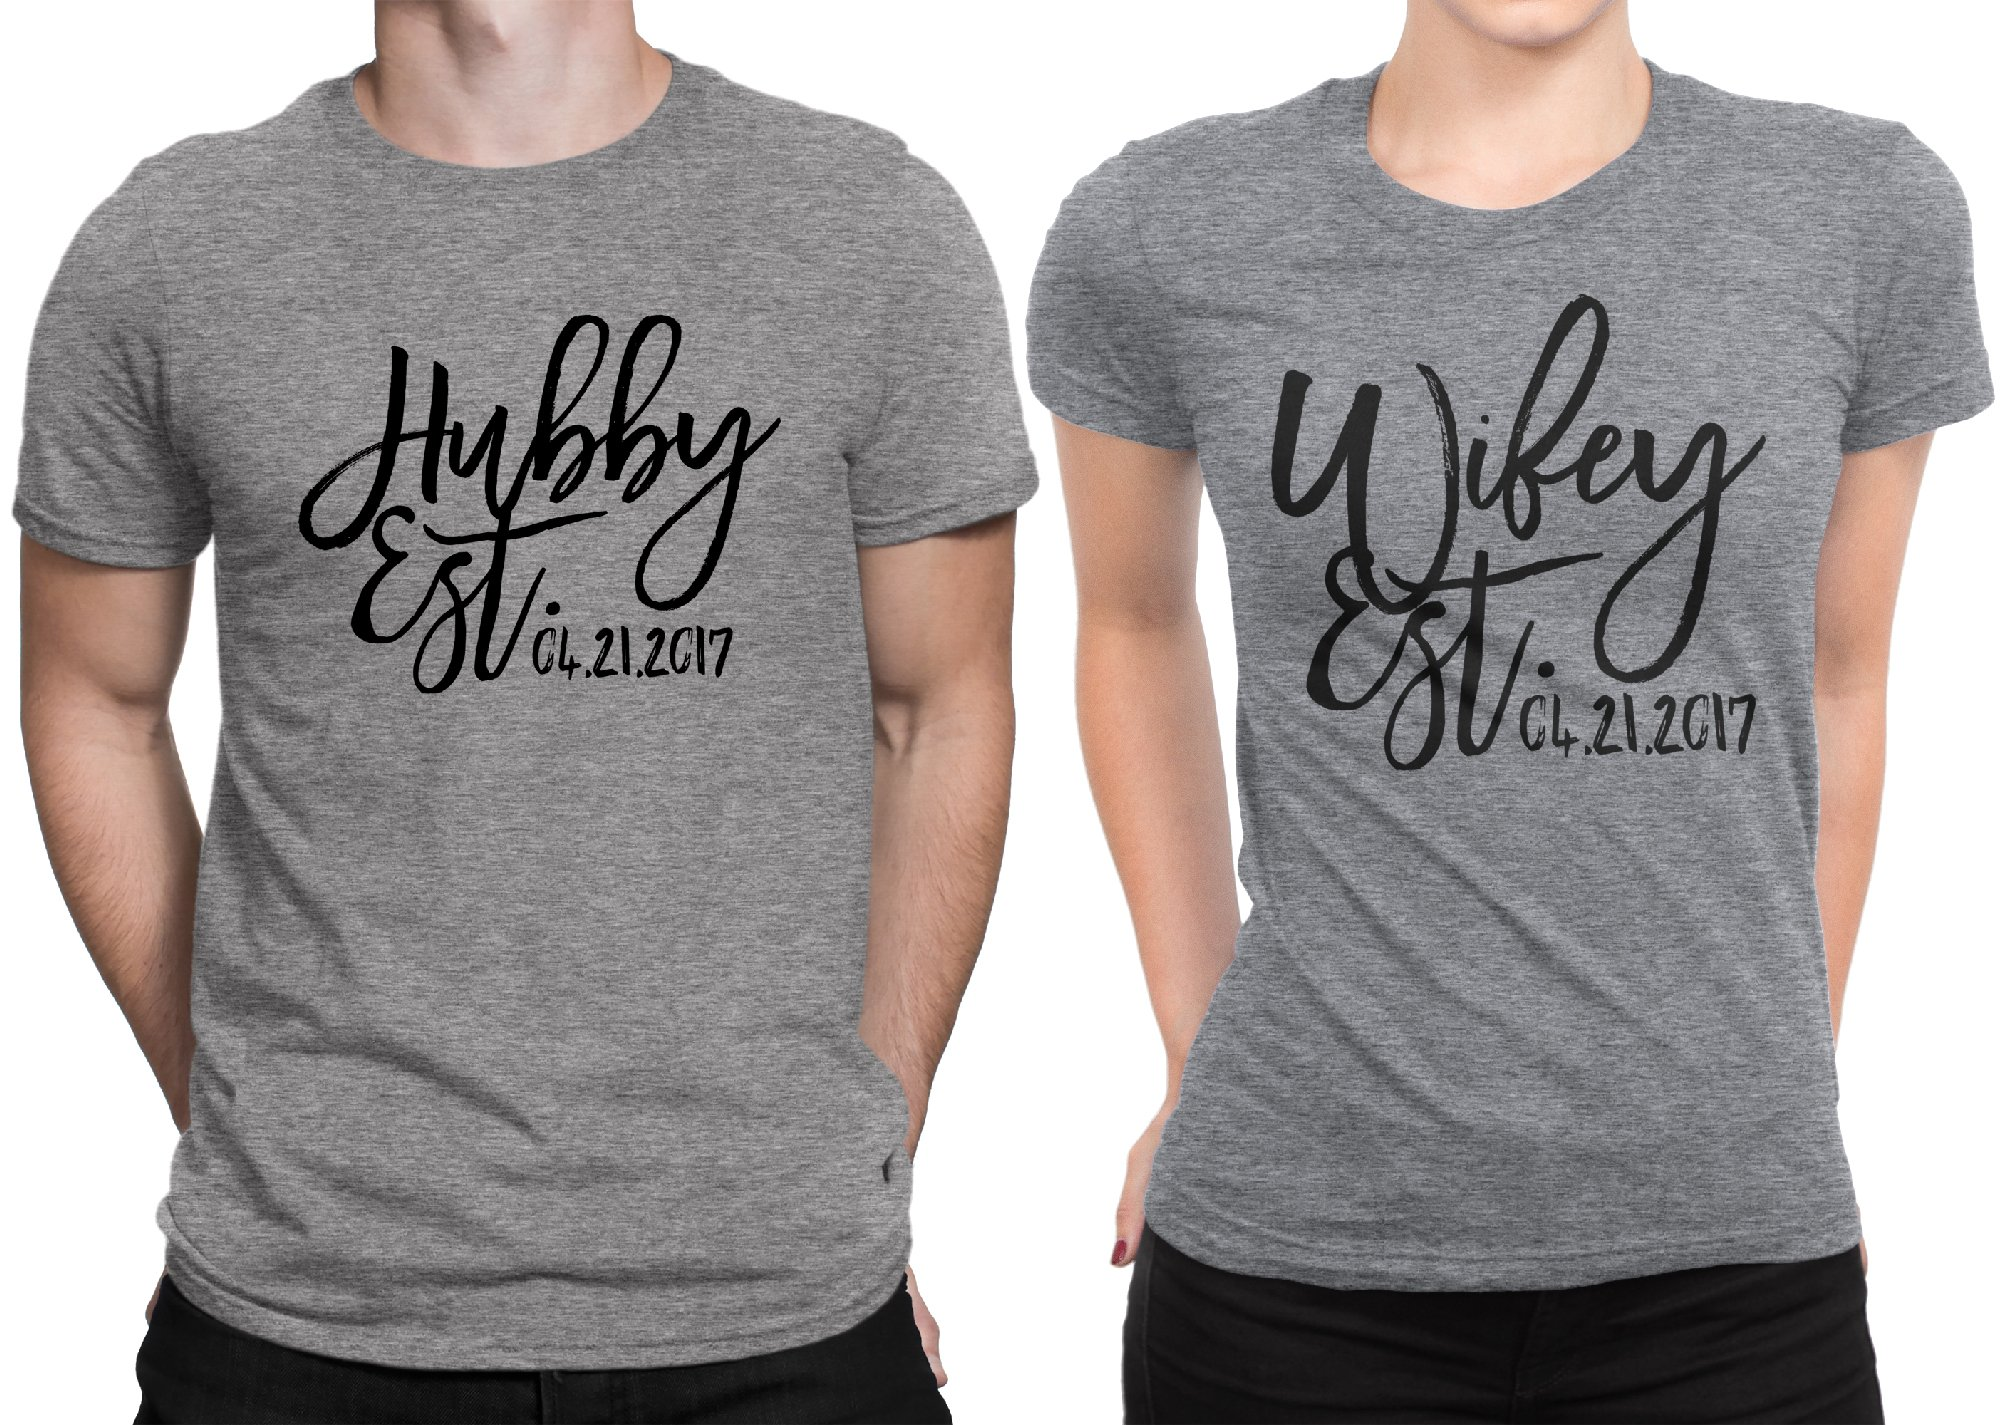 Hubby est Wifey est Wedding Date Couple Matching T-shirt Honeymoon valentines day Men Large / Women X-Large | Deep Heather - Deep Heather